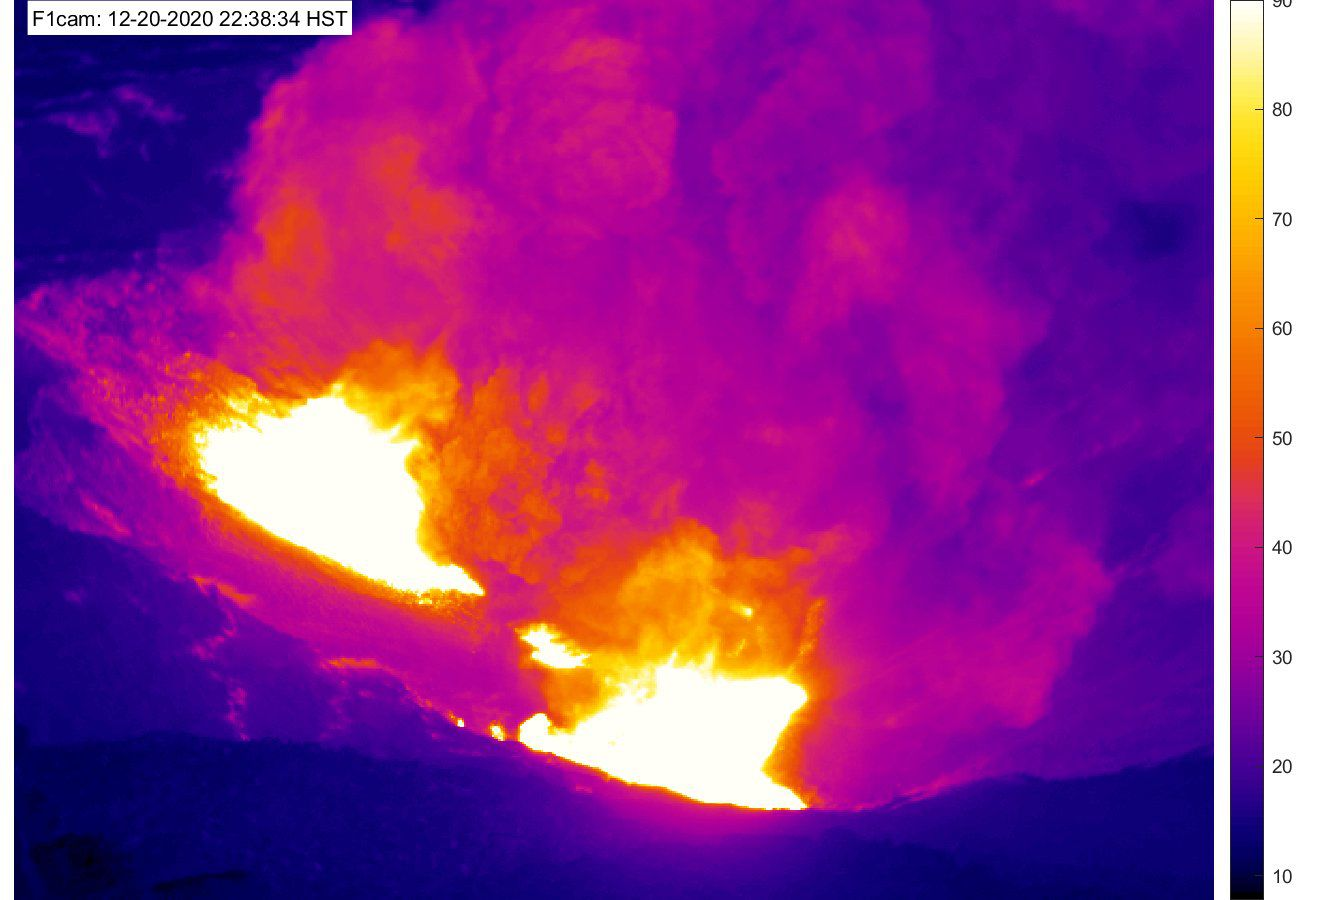 Kilauea - Halema'uma'u crater thermal camera 12/20/2020 / 10:38 p.m. HST (top image) and 12/21/2020 / 12:38 a.m. HST (bottom image) - USGS - HVO